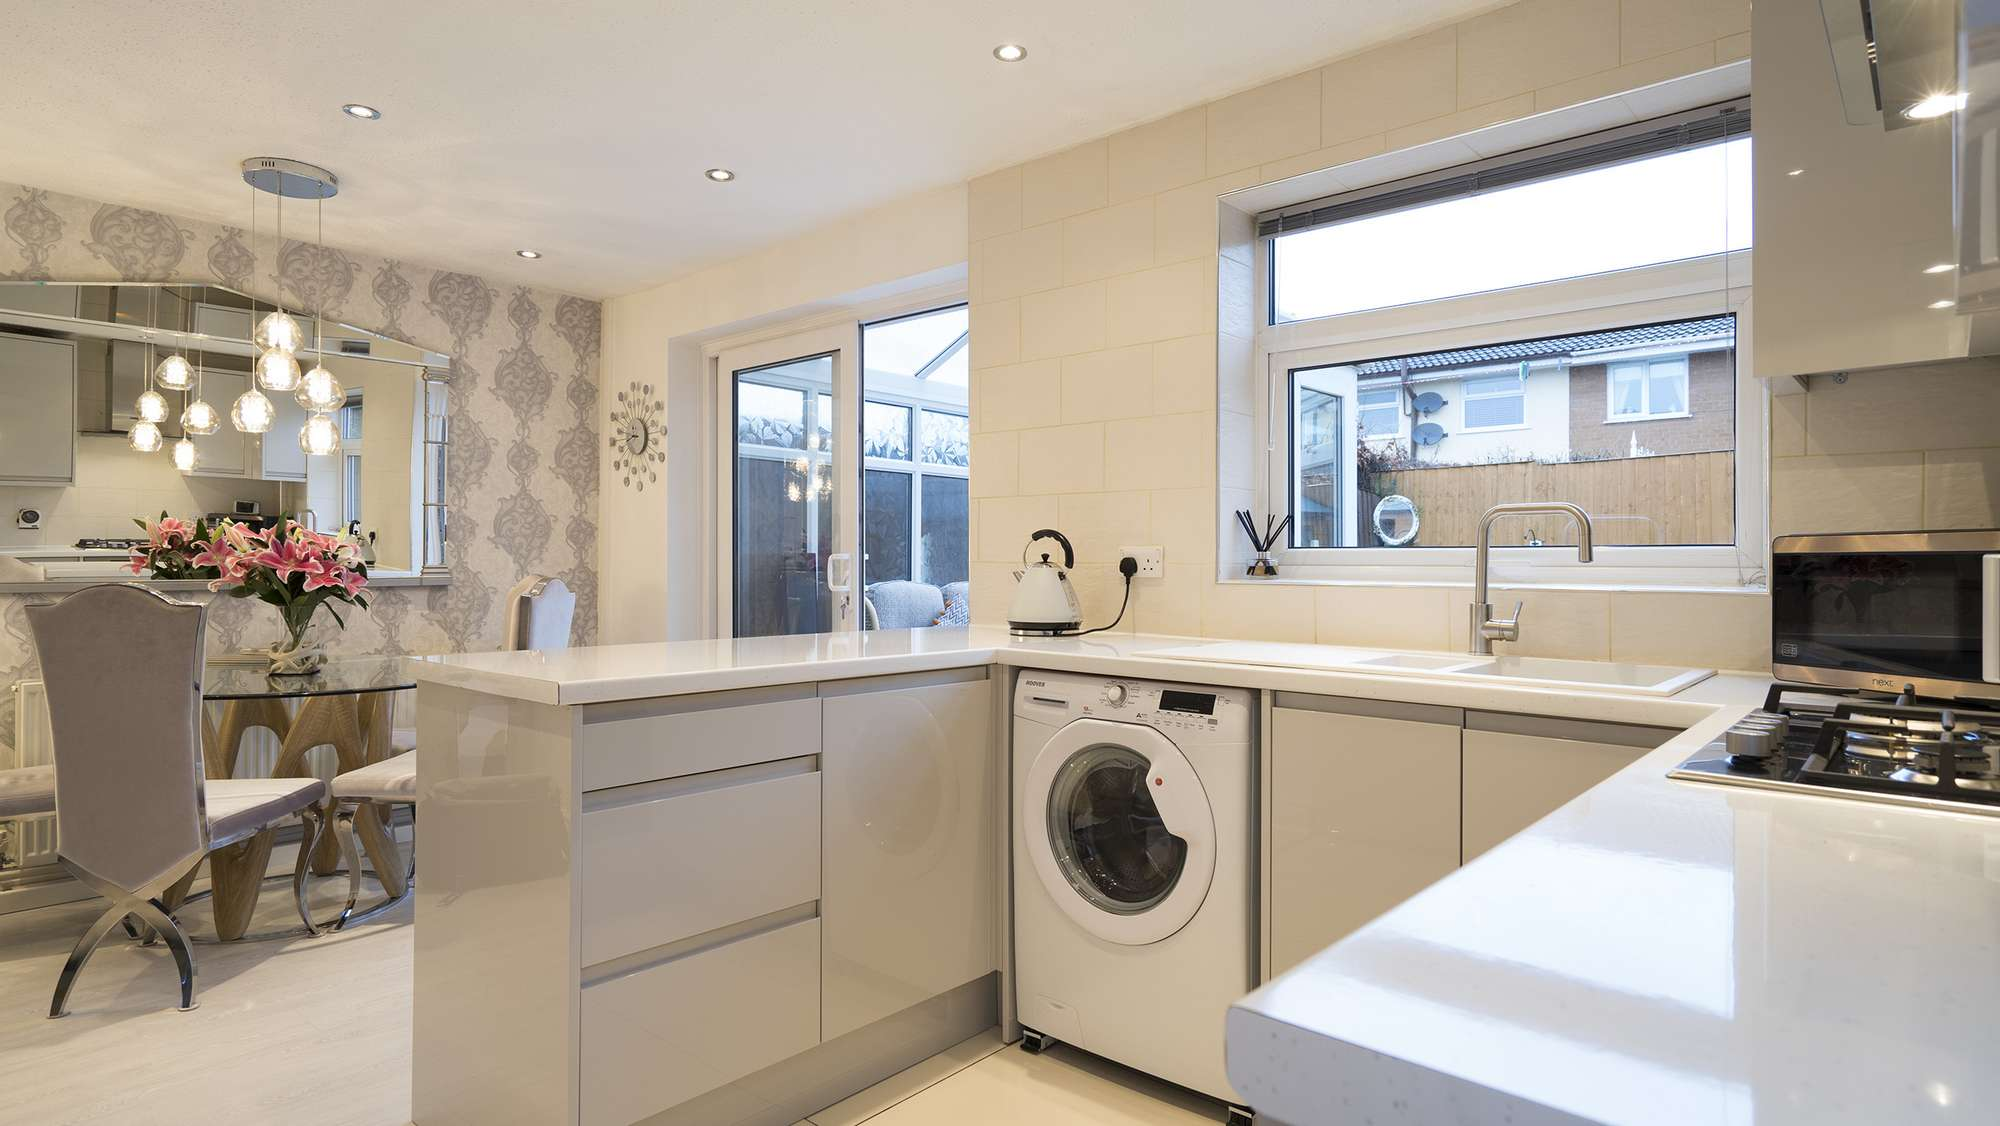 Light grey gloss C shape handle-less kitchen with white sparkle worktops and stainless steel hardware.